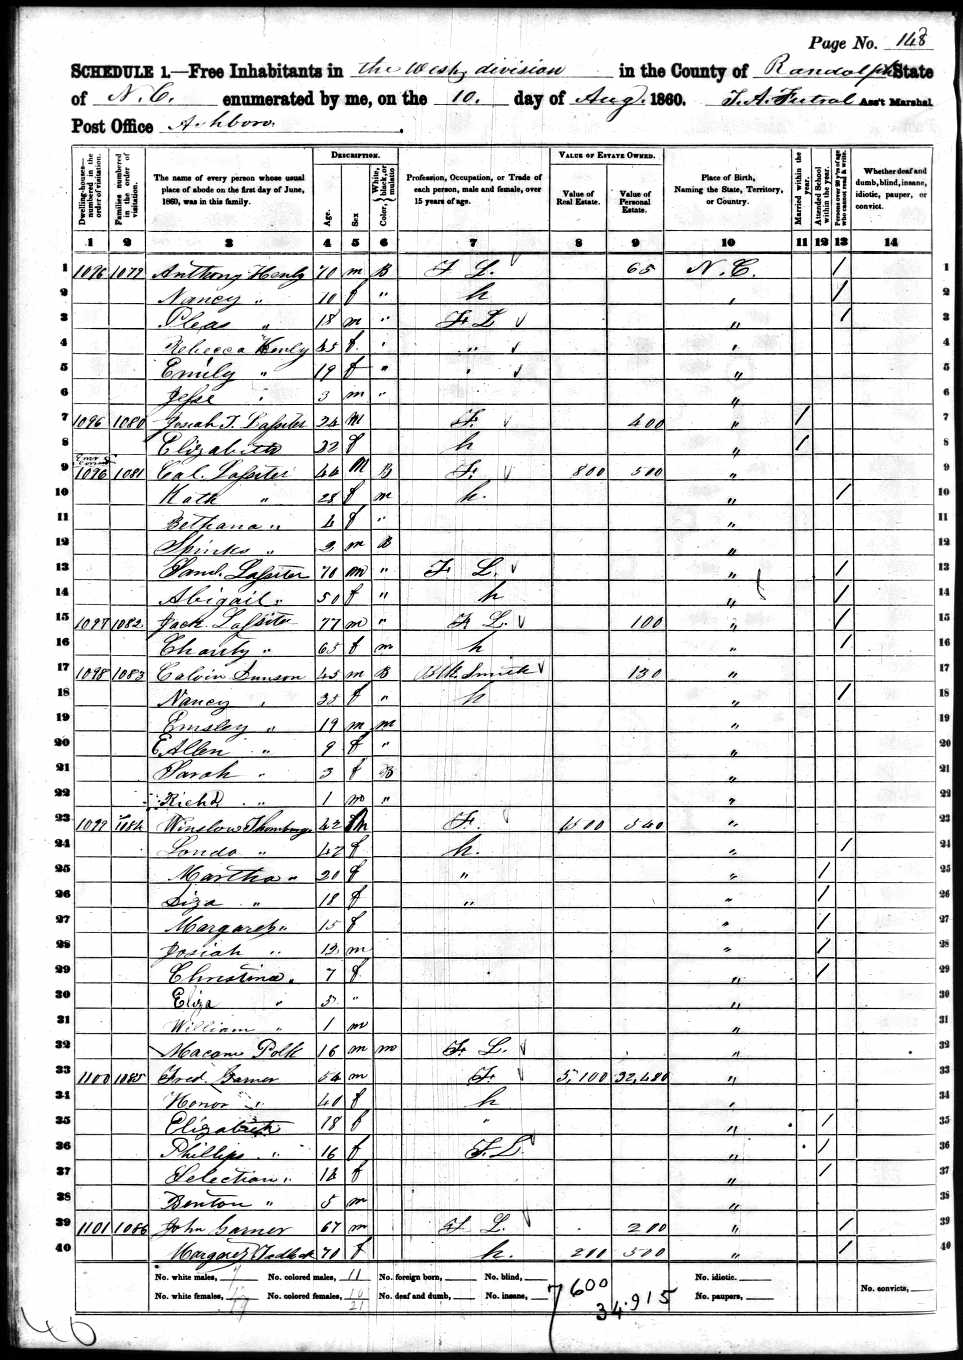 Nancy Dunson 1860 census